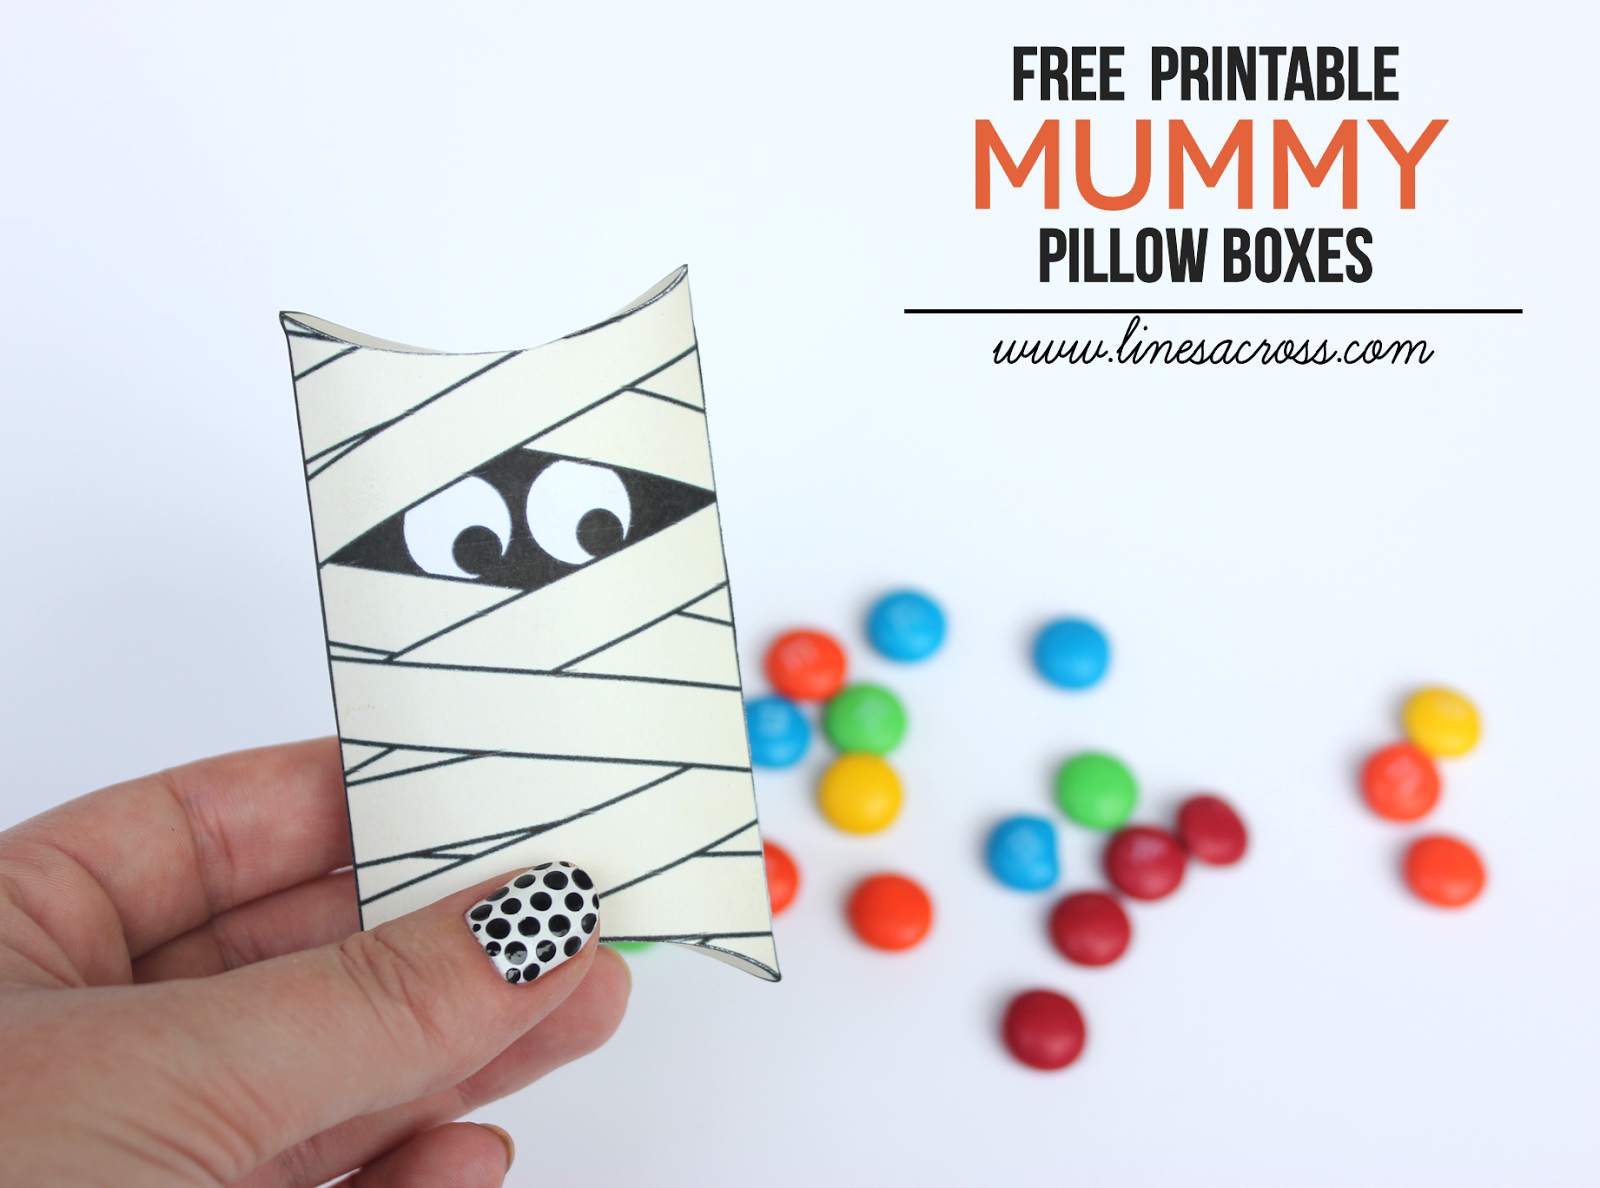 Free printable mummy pillow boxes